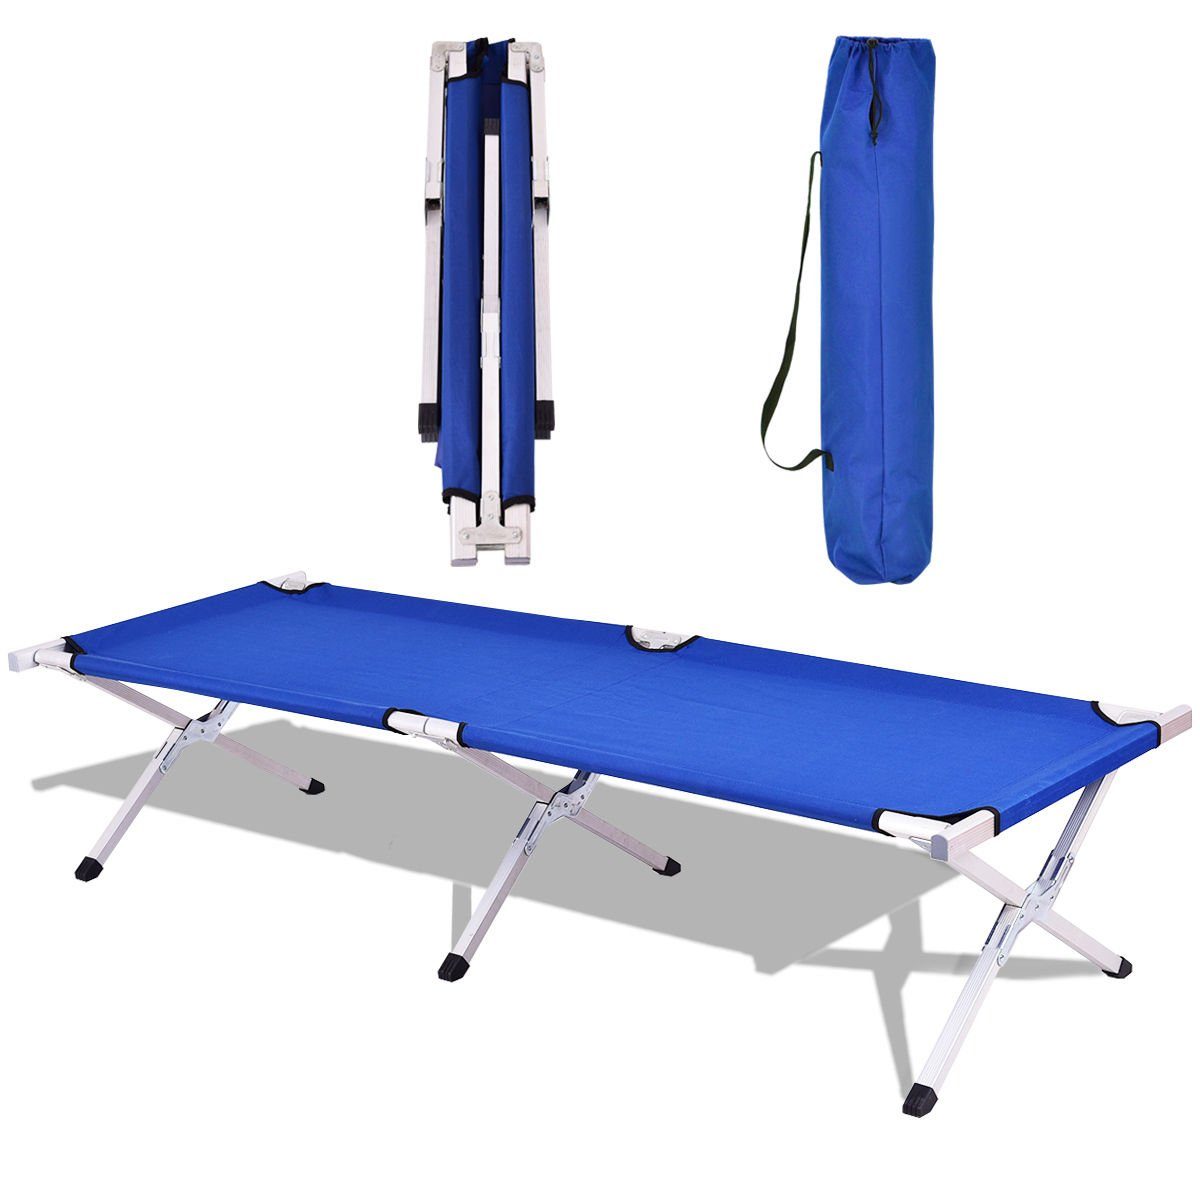 Goplus Heavy Duty Foldable Camping Cot Portable Military Bed Hiking Travel W/Carrying Bag (Blue) by Goplus